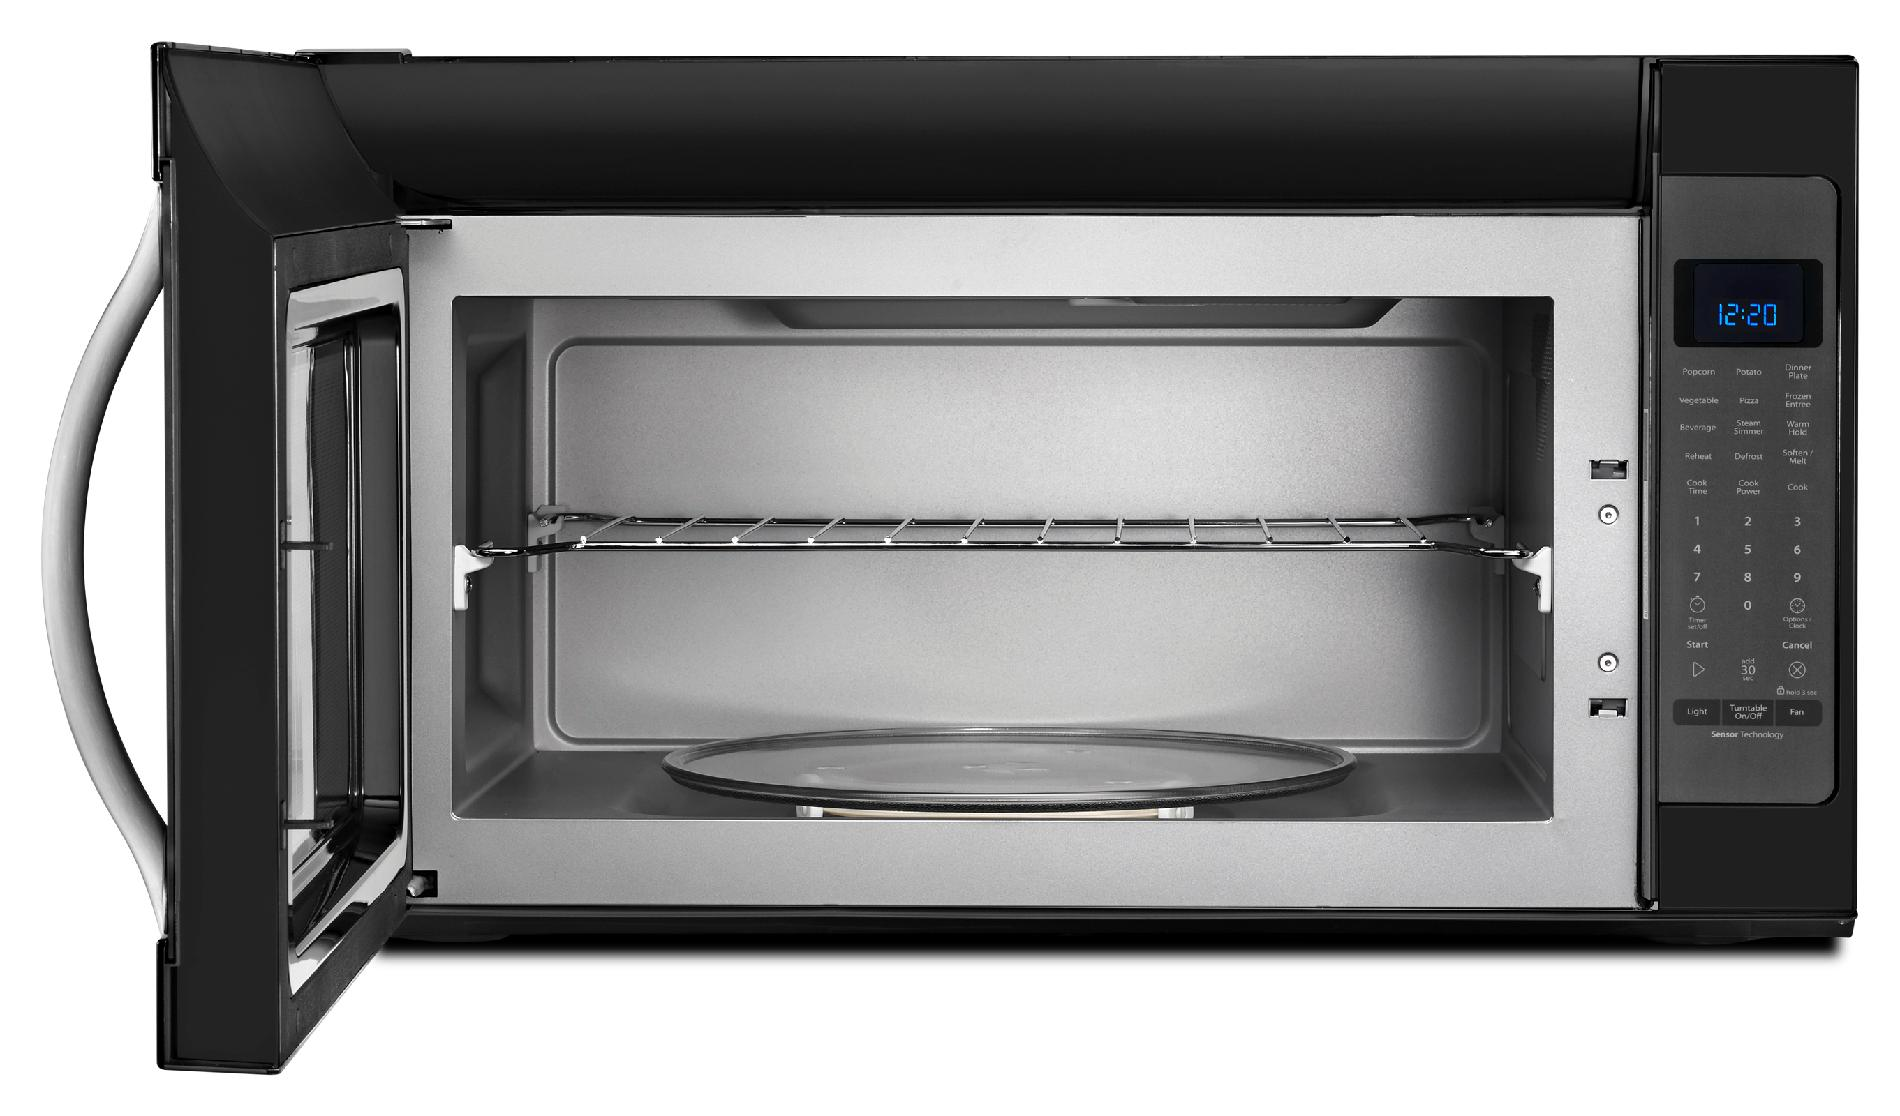 Whirlpool WMH53520CE 2.0 cu. ft. Over-the-Range Microwave w/ CleanRelease® Non-Stick Interior - Black w/Silver Handle